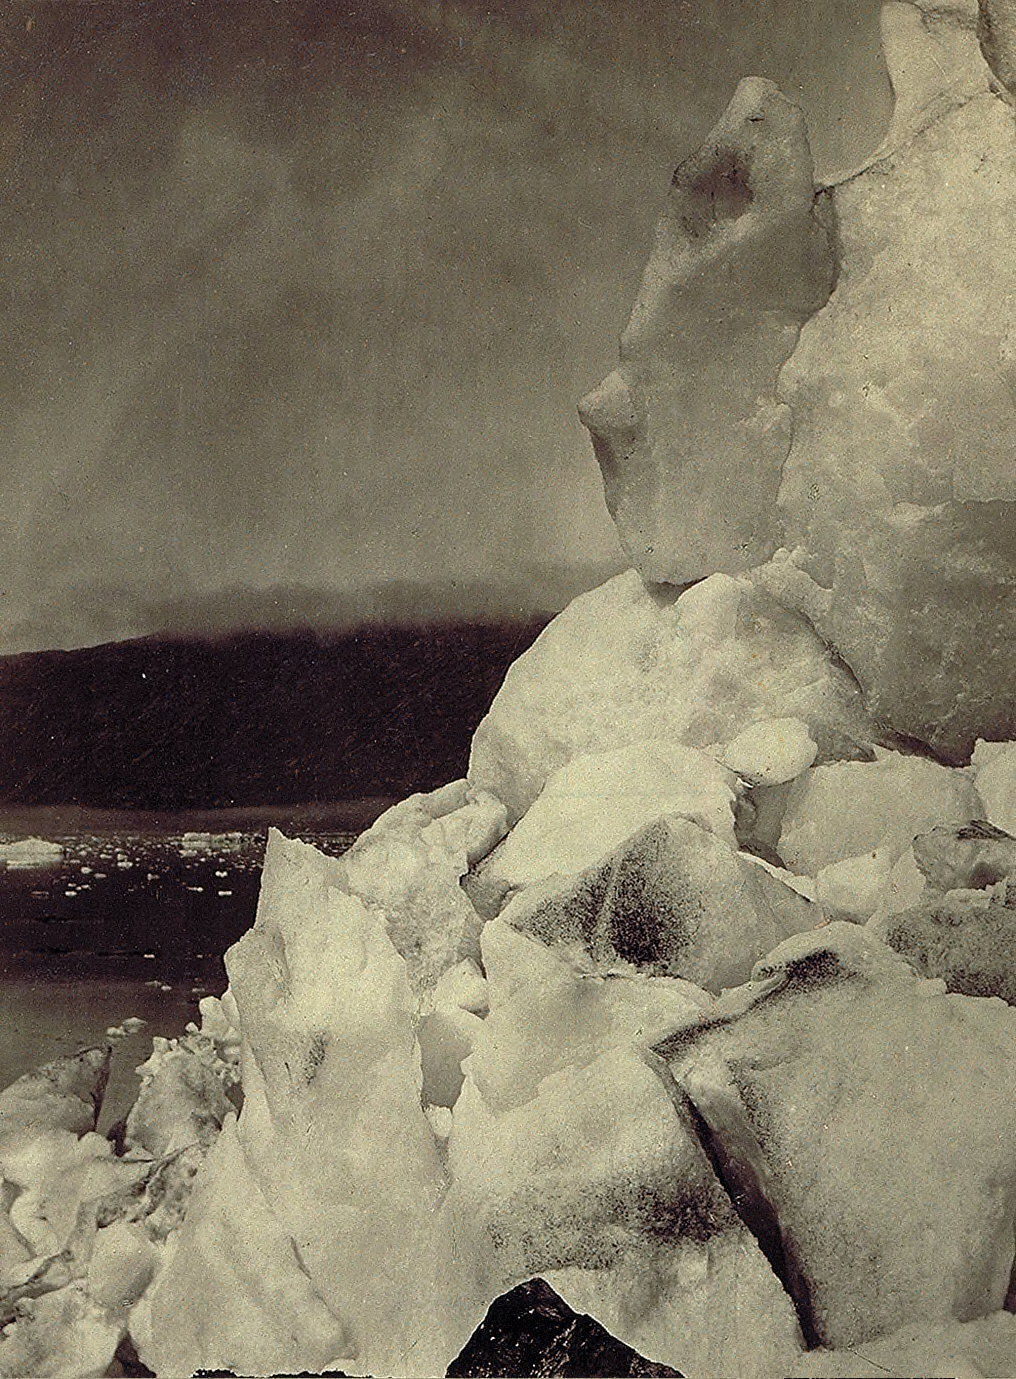 Arctic Regions: Page 34, No. 41, Enlarged View of No. 33